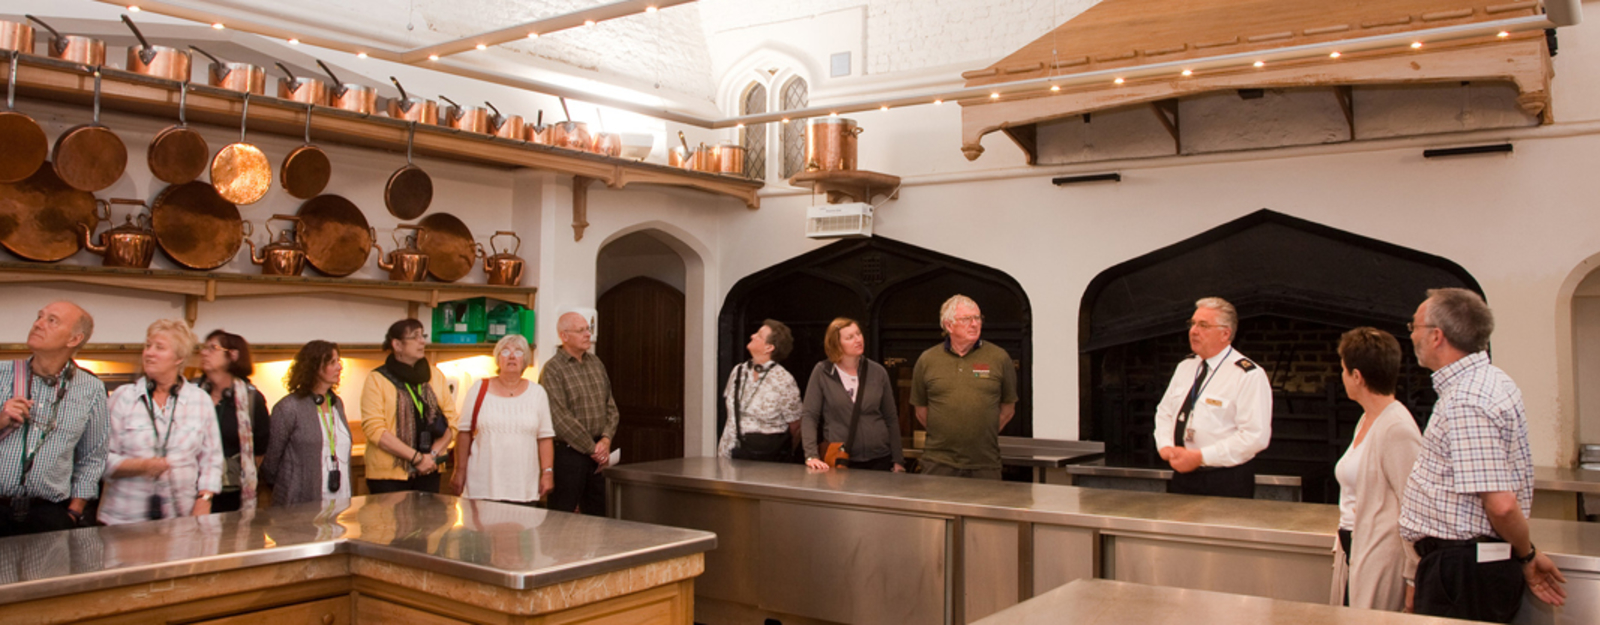 Tour to the Great Kitchen